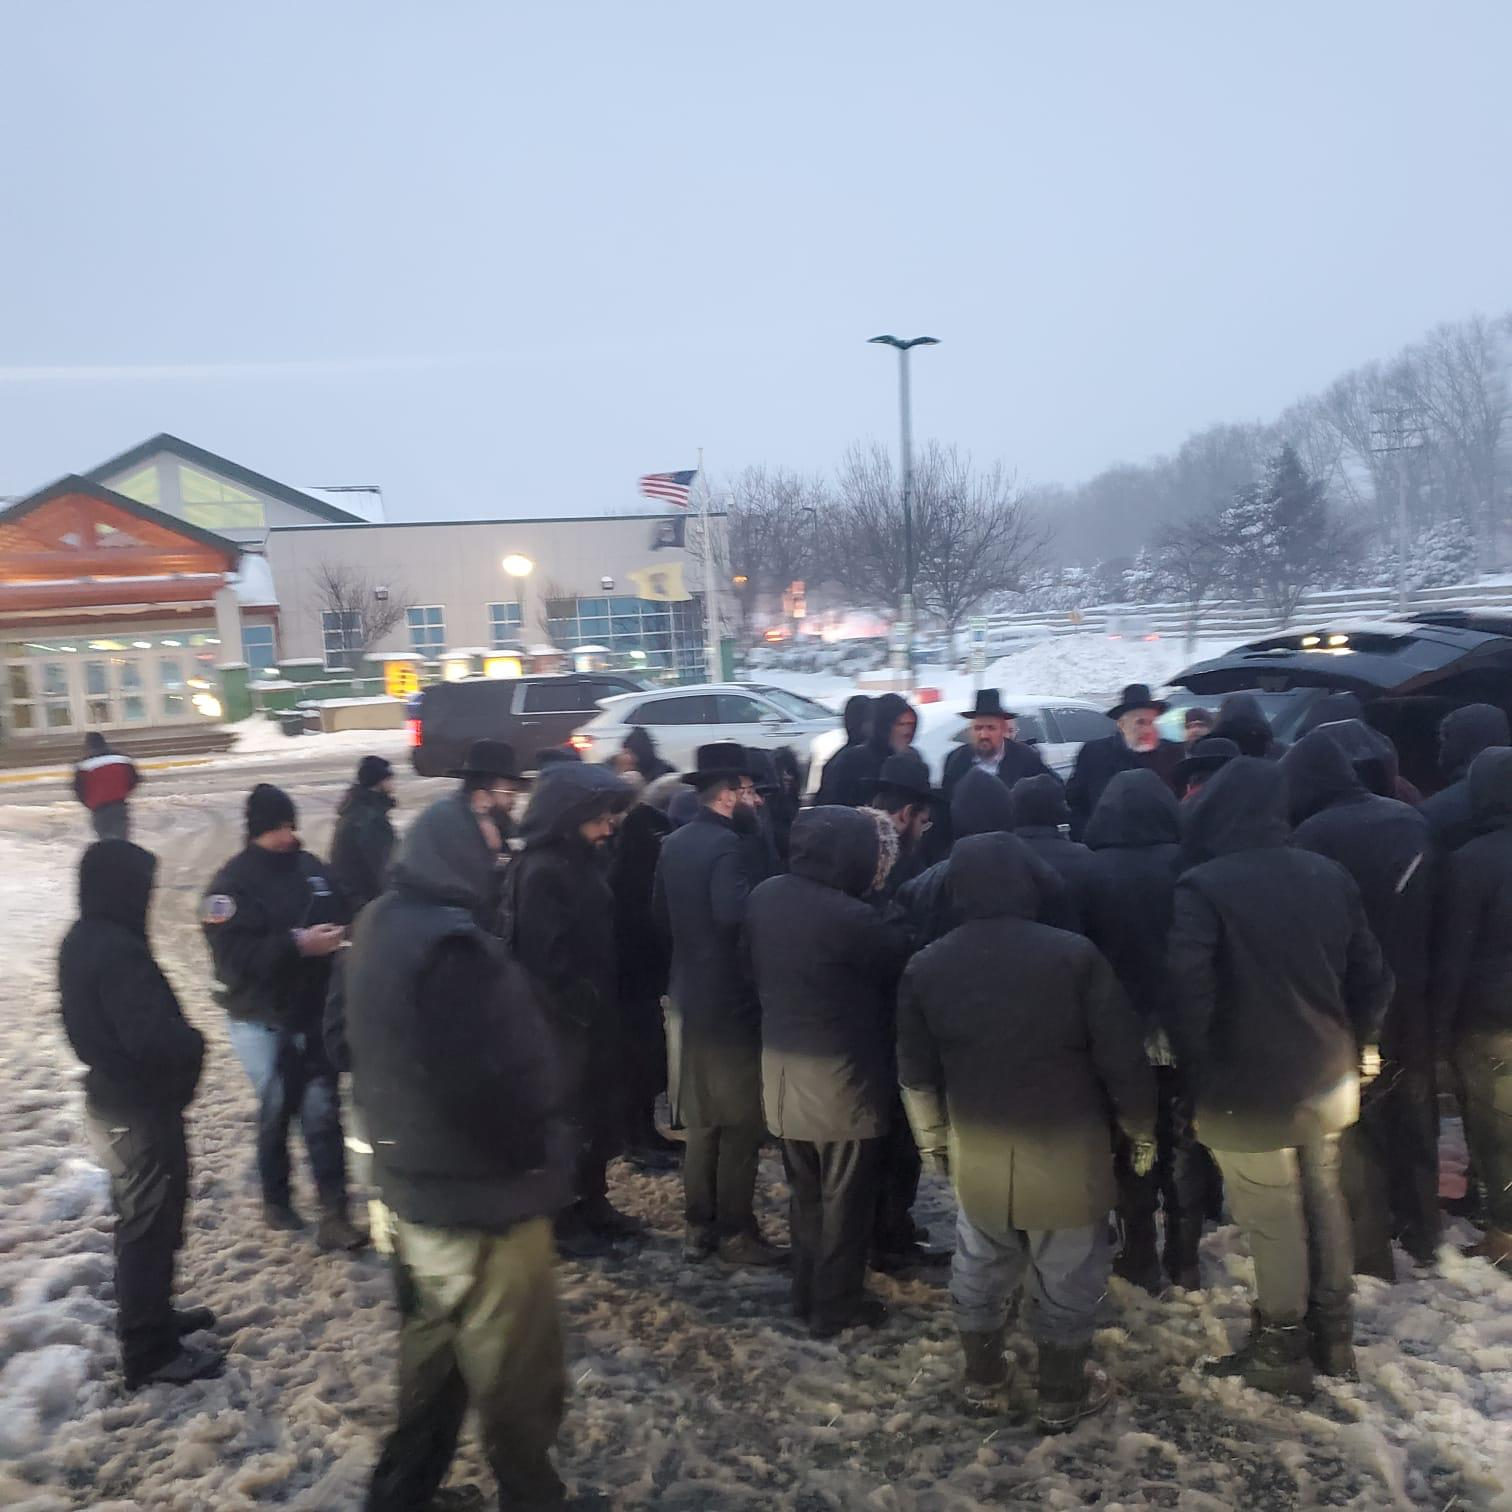 From Sorrow to Joy, Misaskim and Hatzolah Air Join Forces to Brave the Snow 3